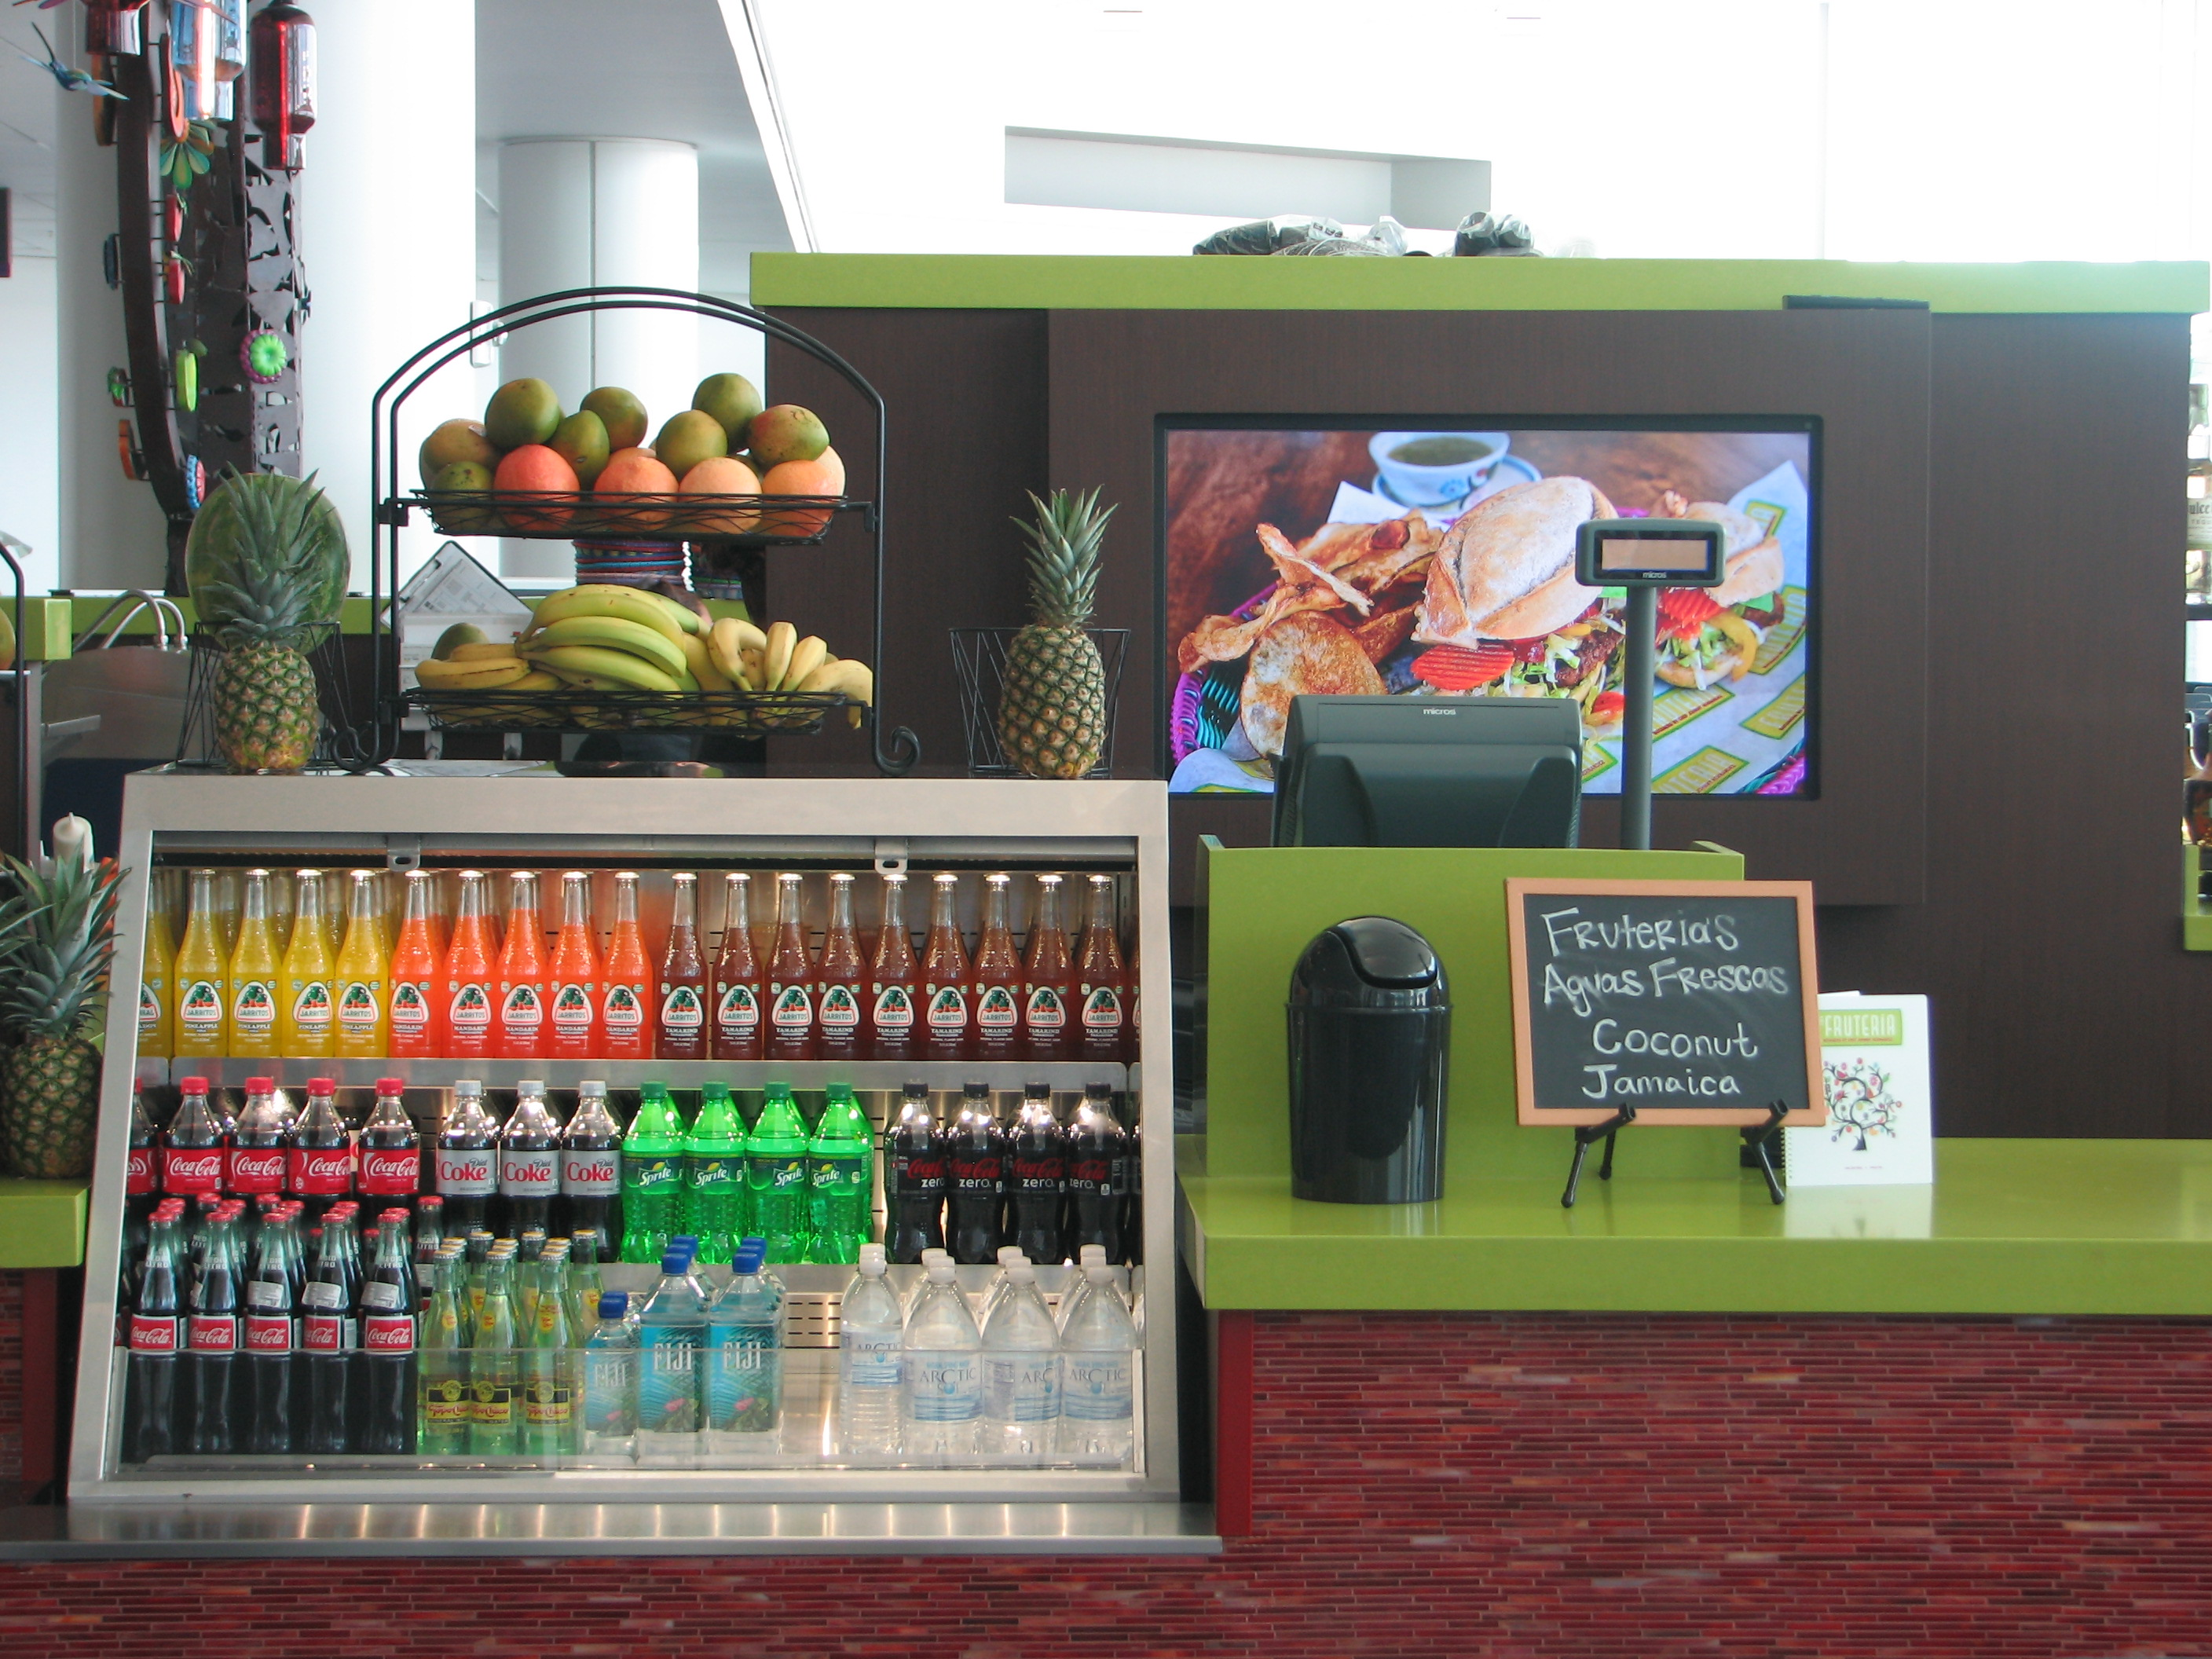 OSM Solutions Provides Digital Menu Board System at The Fruteria Houston IAH